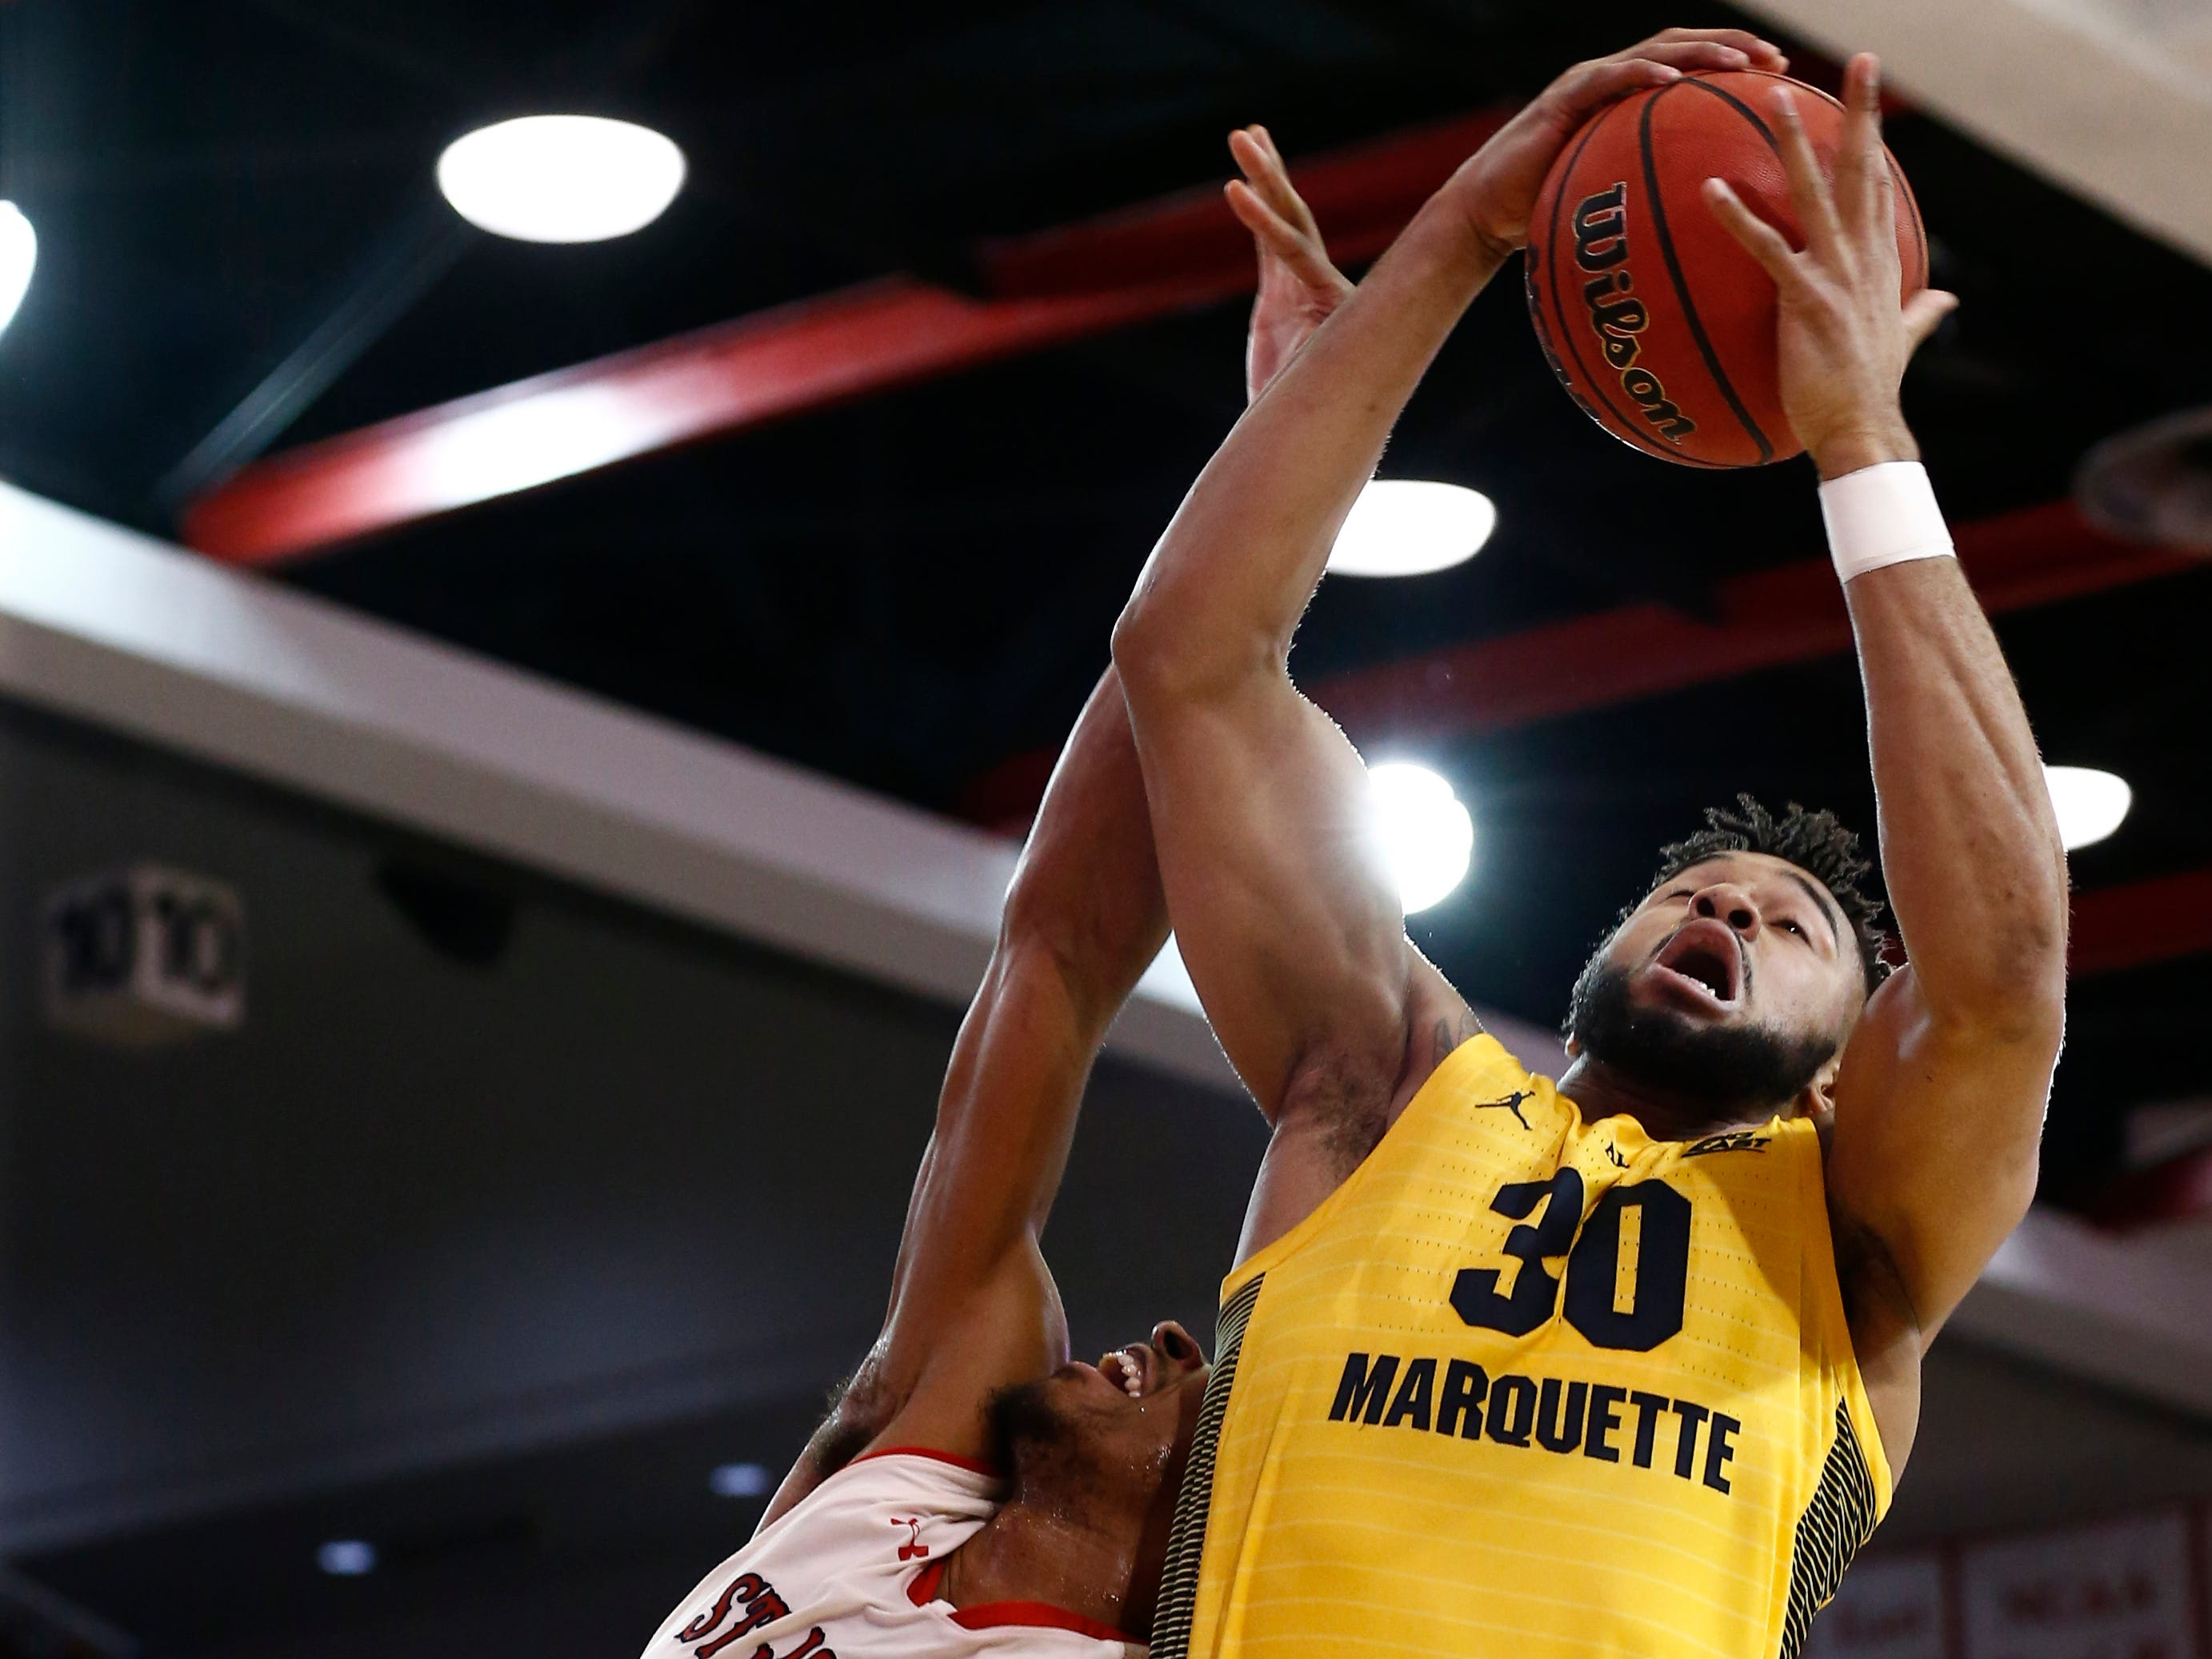 Jan 1, 2019; Queens, NY, USA; St. John's Red Storm guard Justin Simon (5) fights for the ball against Marquette Golden Eagles forward Ed Morrow (30) in the first half at Carnesecca Arena. Mandatory Credit: Nicole Sweet-USA TODAY Sports